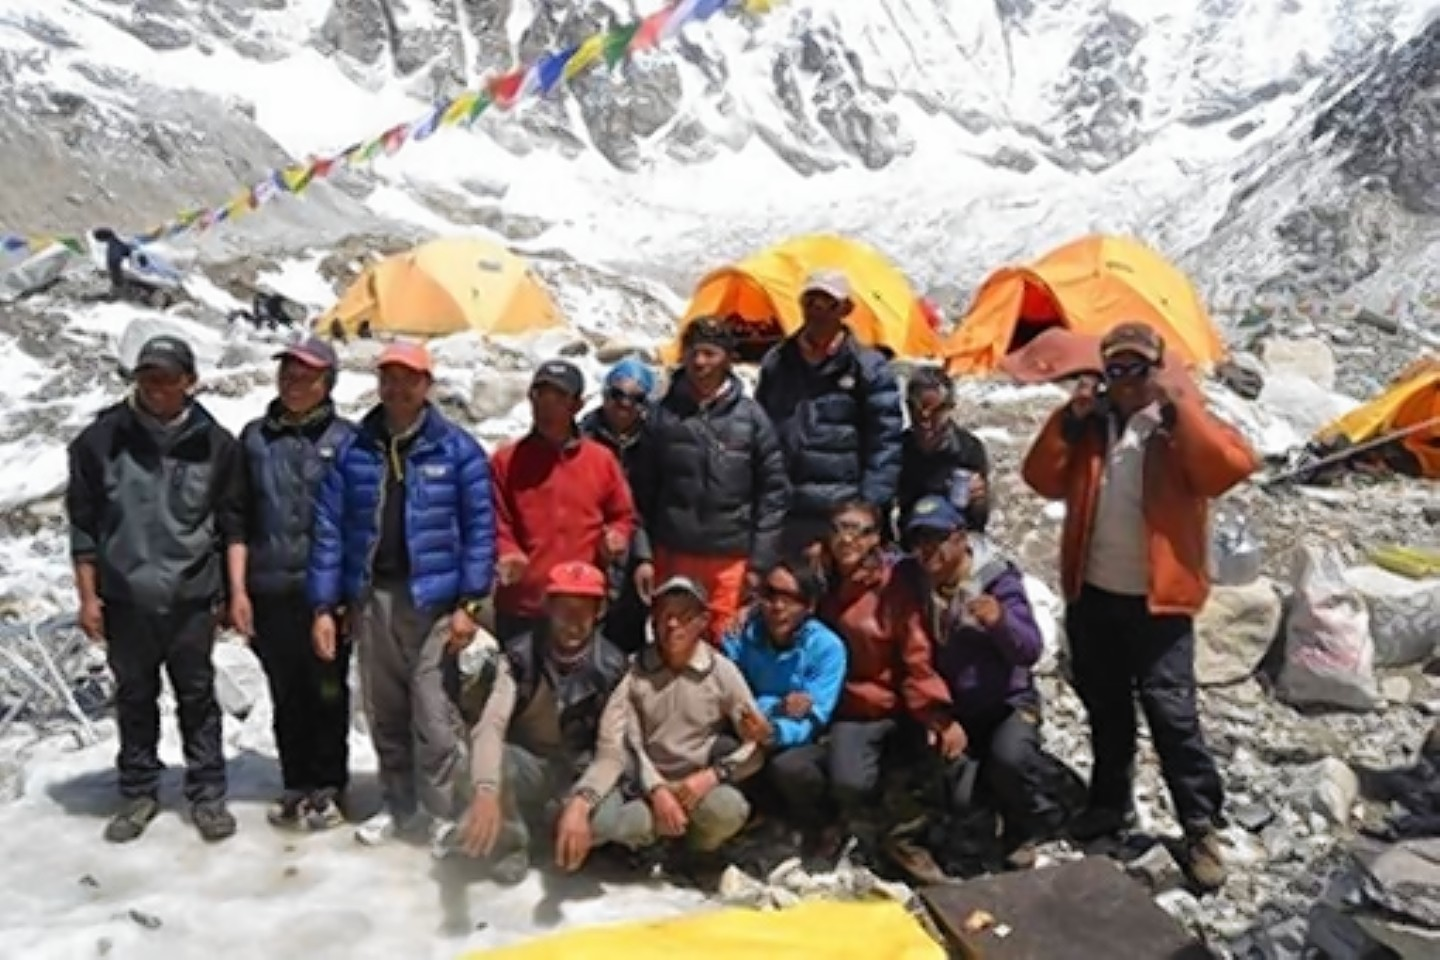 The sherpa group at Everest base camp a few days before the devastating avalanche which killed three of the group